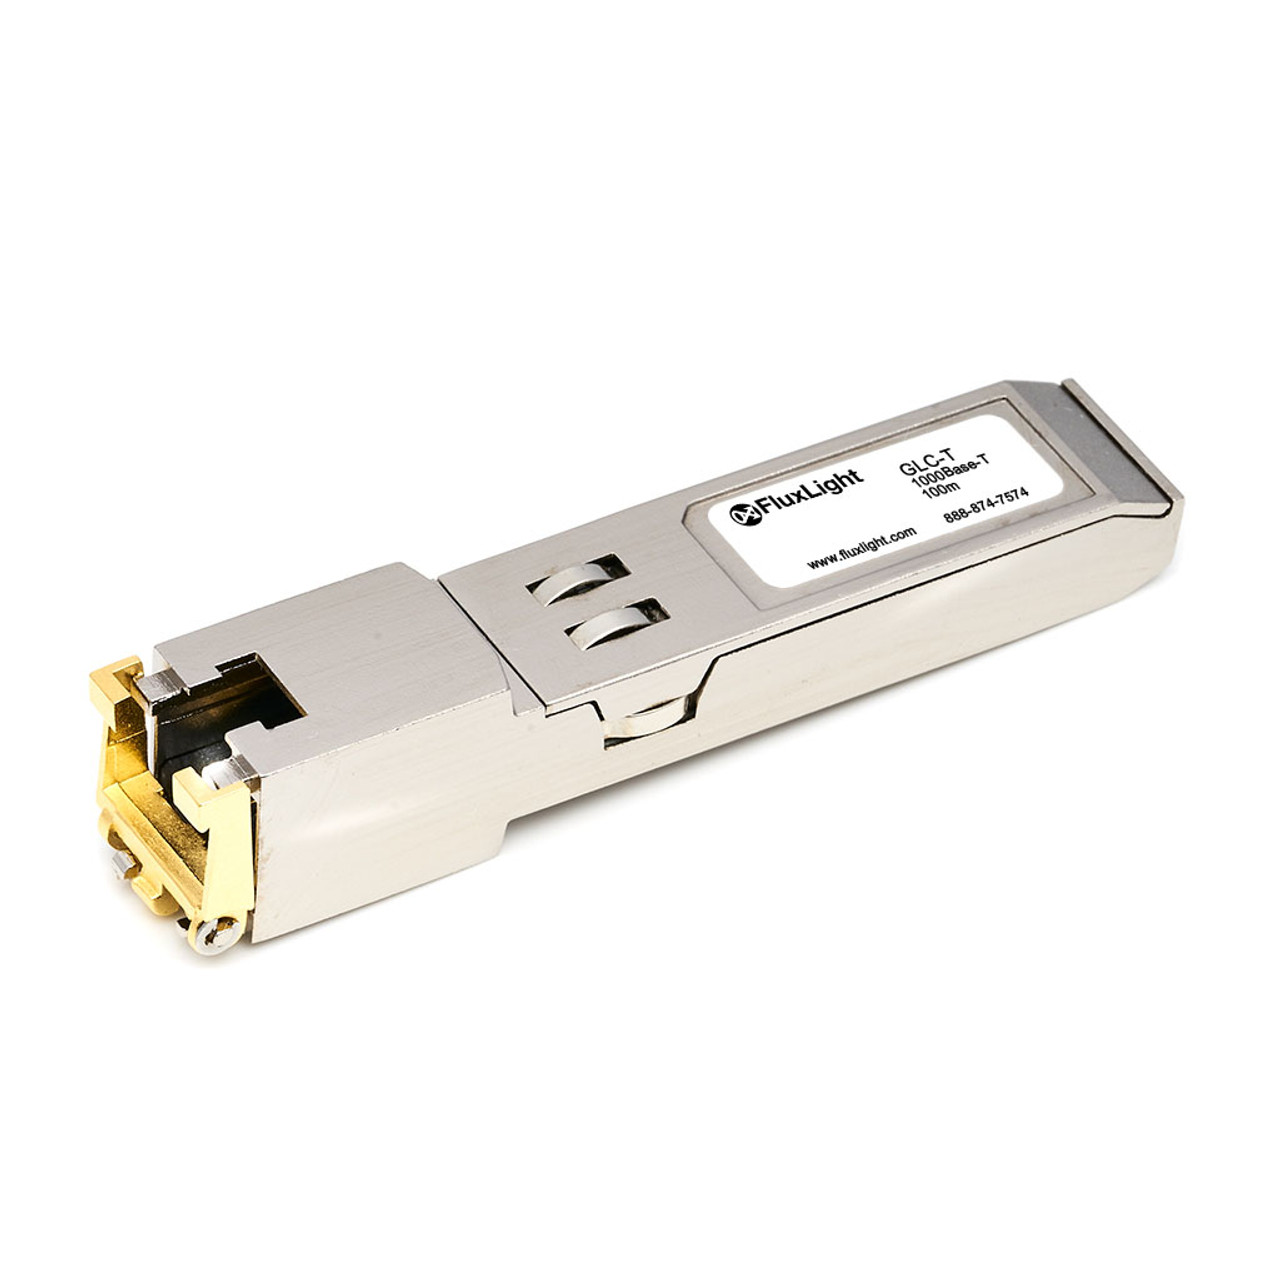 New SFP-GIG-T Alcatel Compatible 1000Base-T SFP Transceiver module RJ-45 Copper